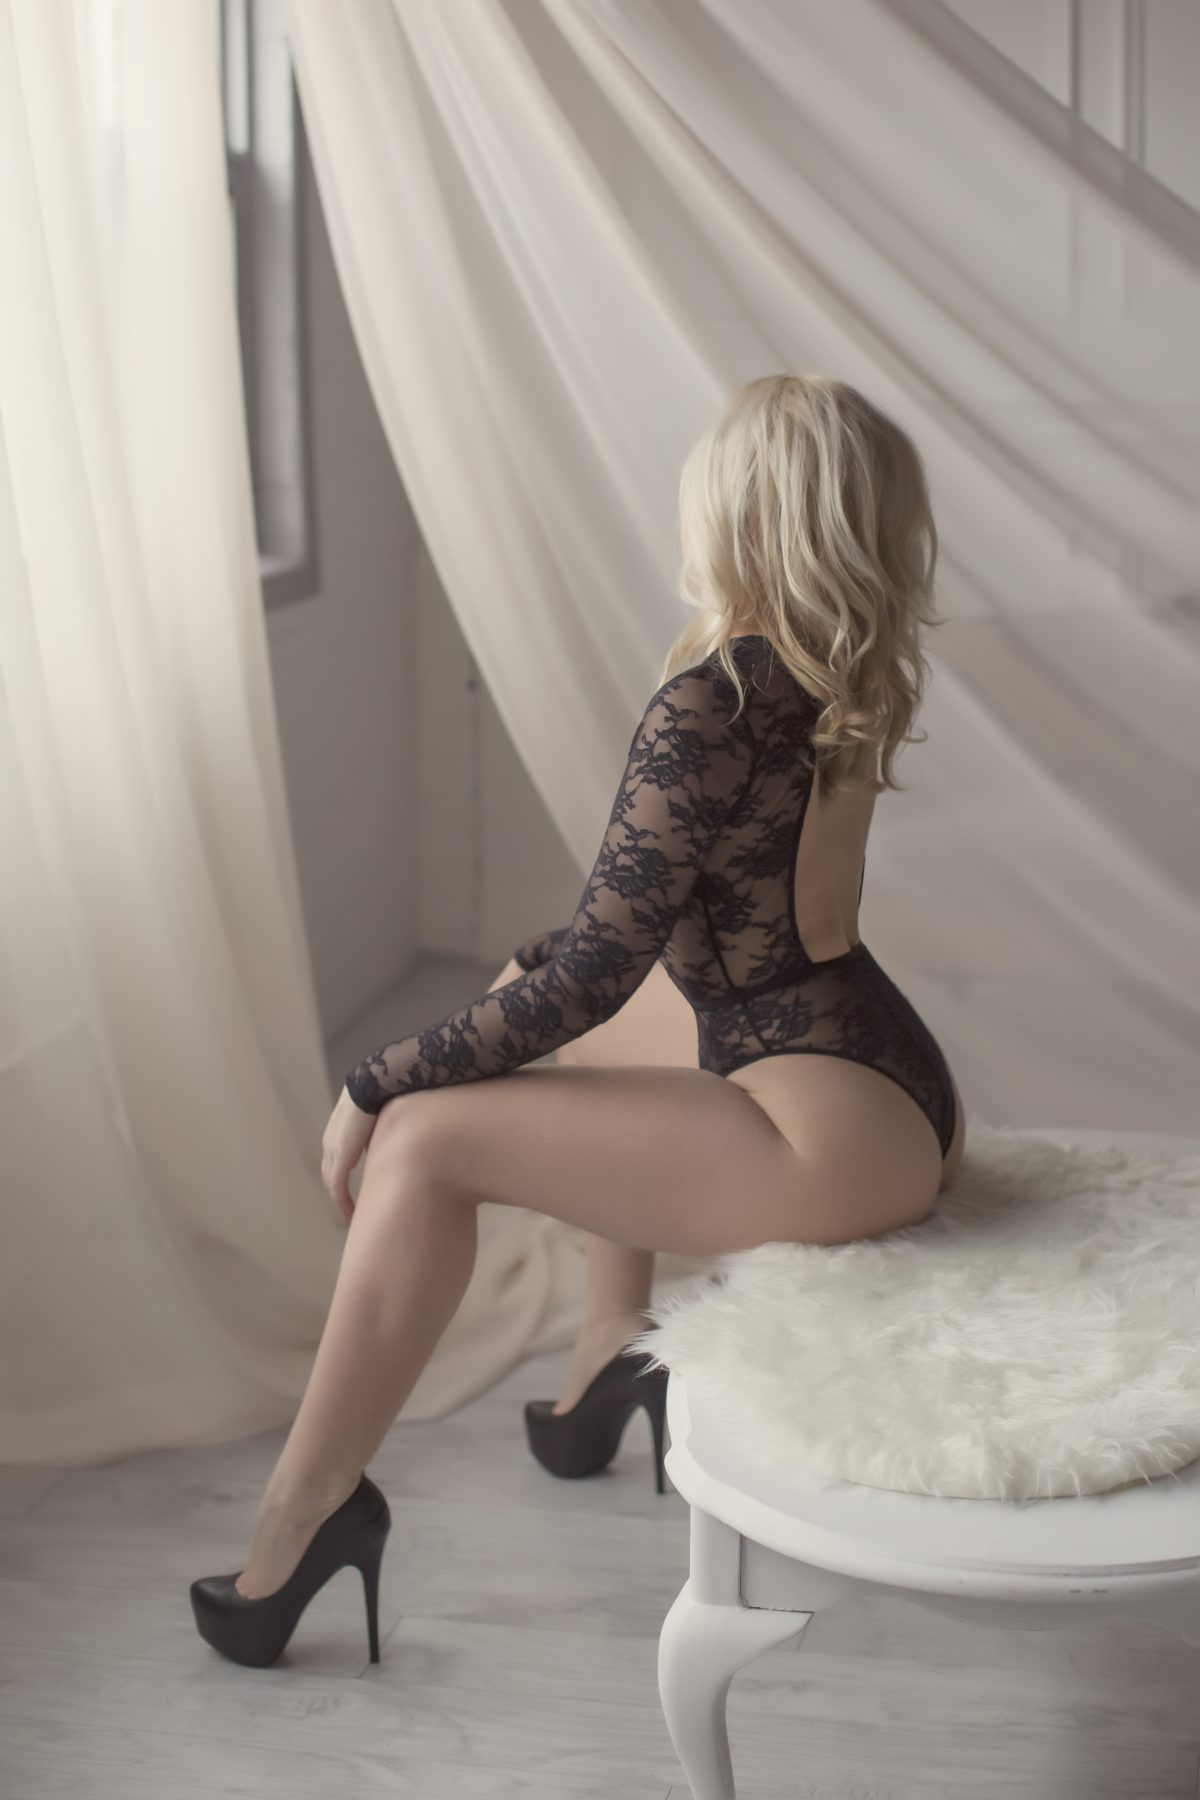 Toronto escorts companion upscale Hope Interests Disability-friendly Non-smoking Mature Figure Slender Petite Breasts Natural Hair Blonde Ethnicity European Tattoos Large